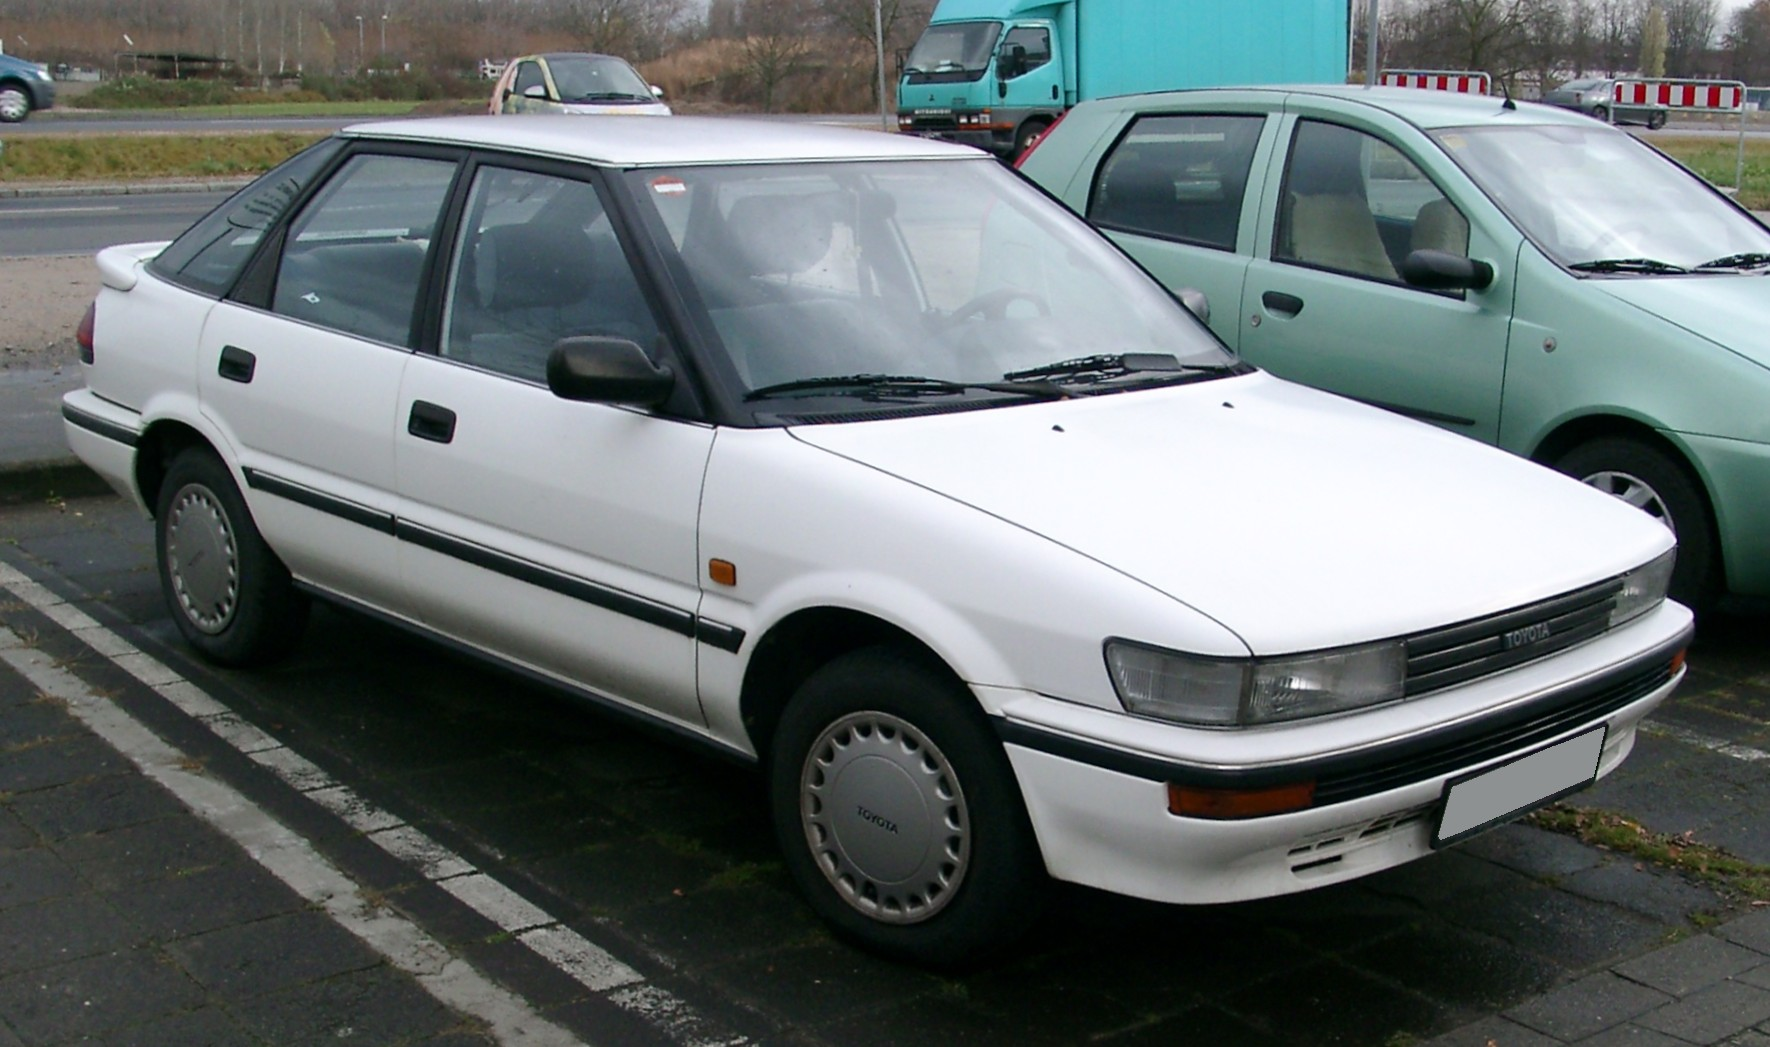 Example of a used Toyota Corolla sedan from online Japanese used cars exporter BE FORWARD.